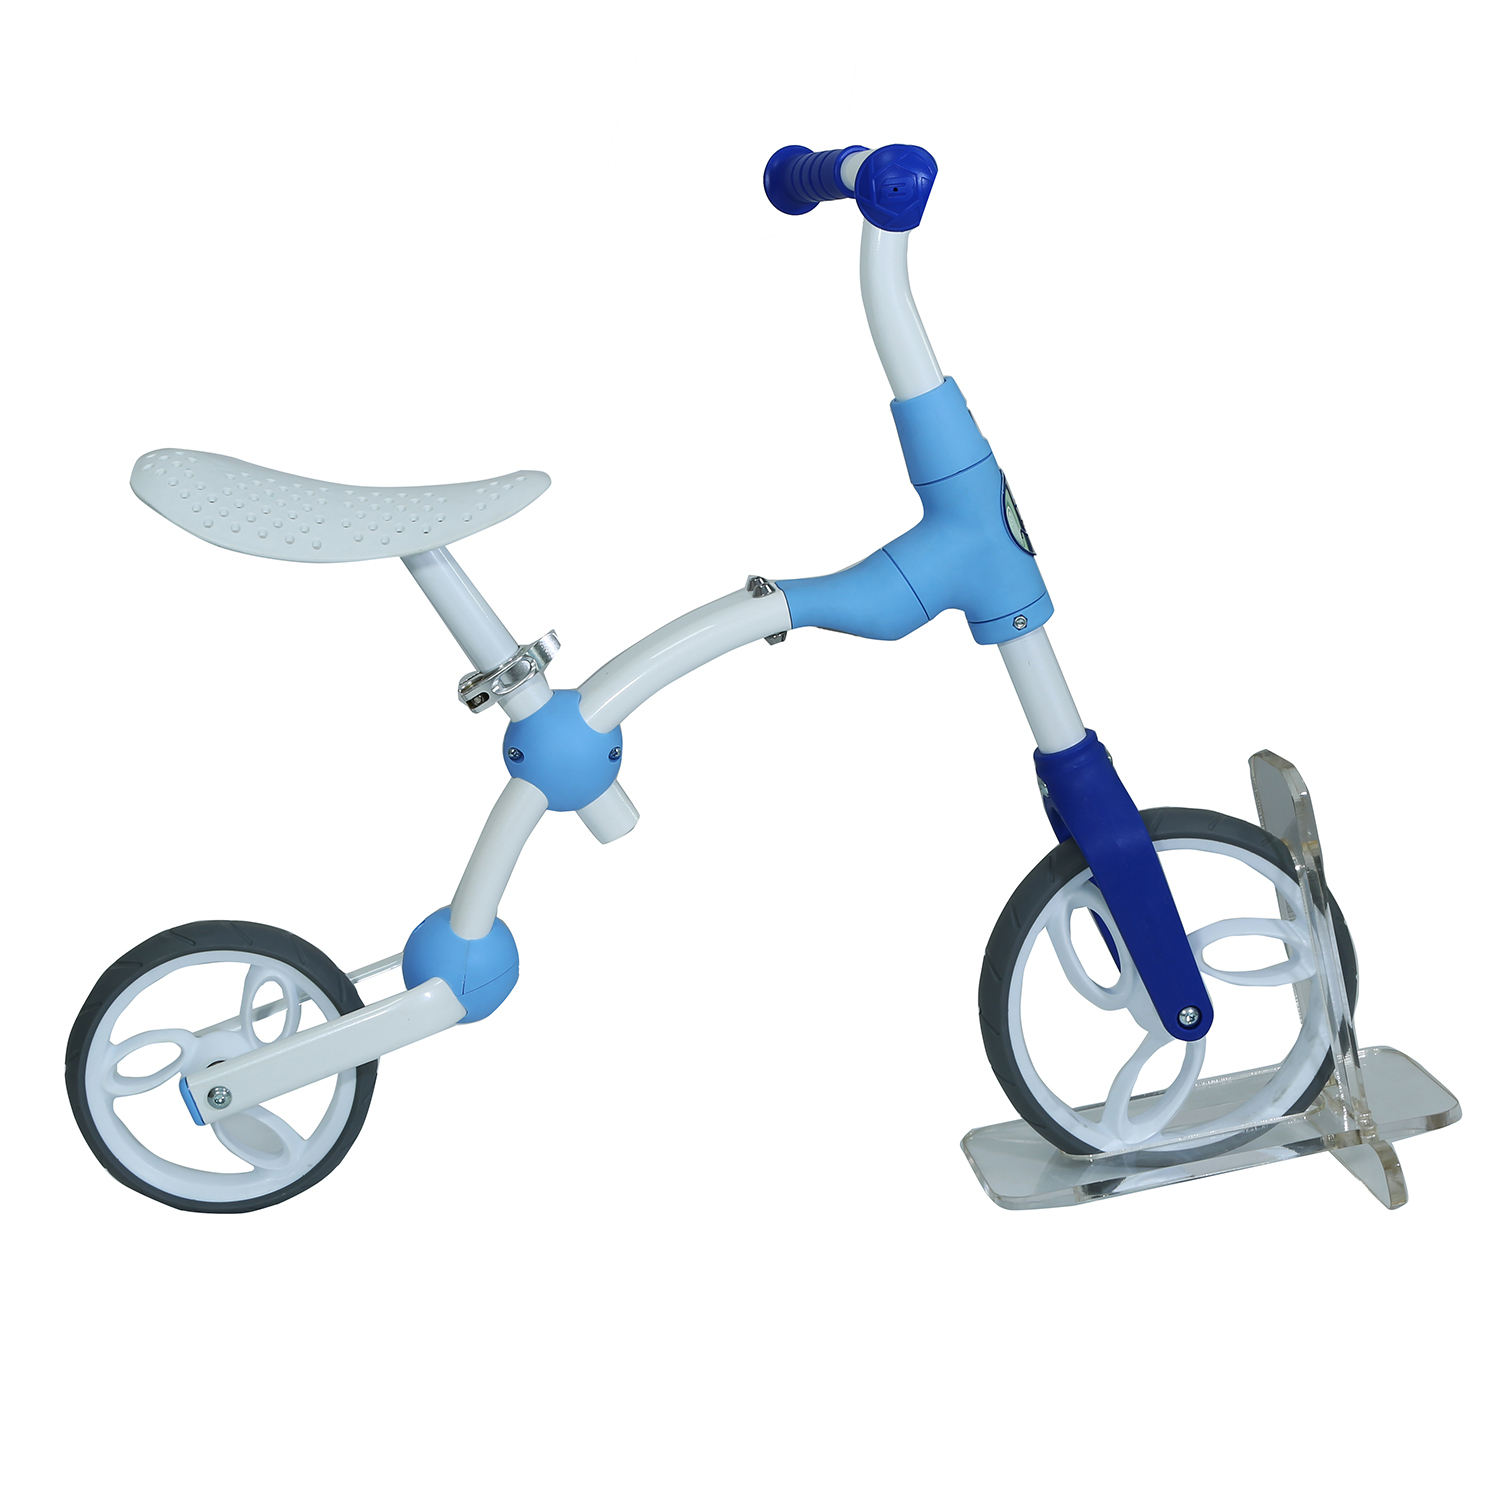 Best Quality Kids balance bike /Cheap Price Three Wheel Children balance bike/ Kids Toy balance bike